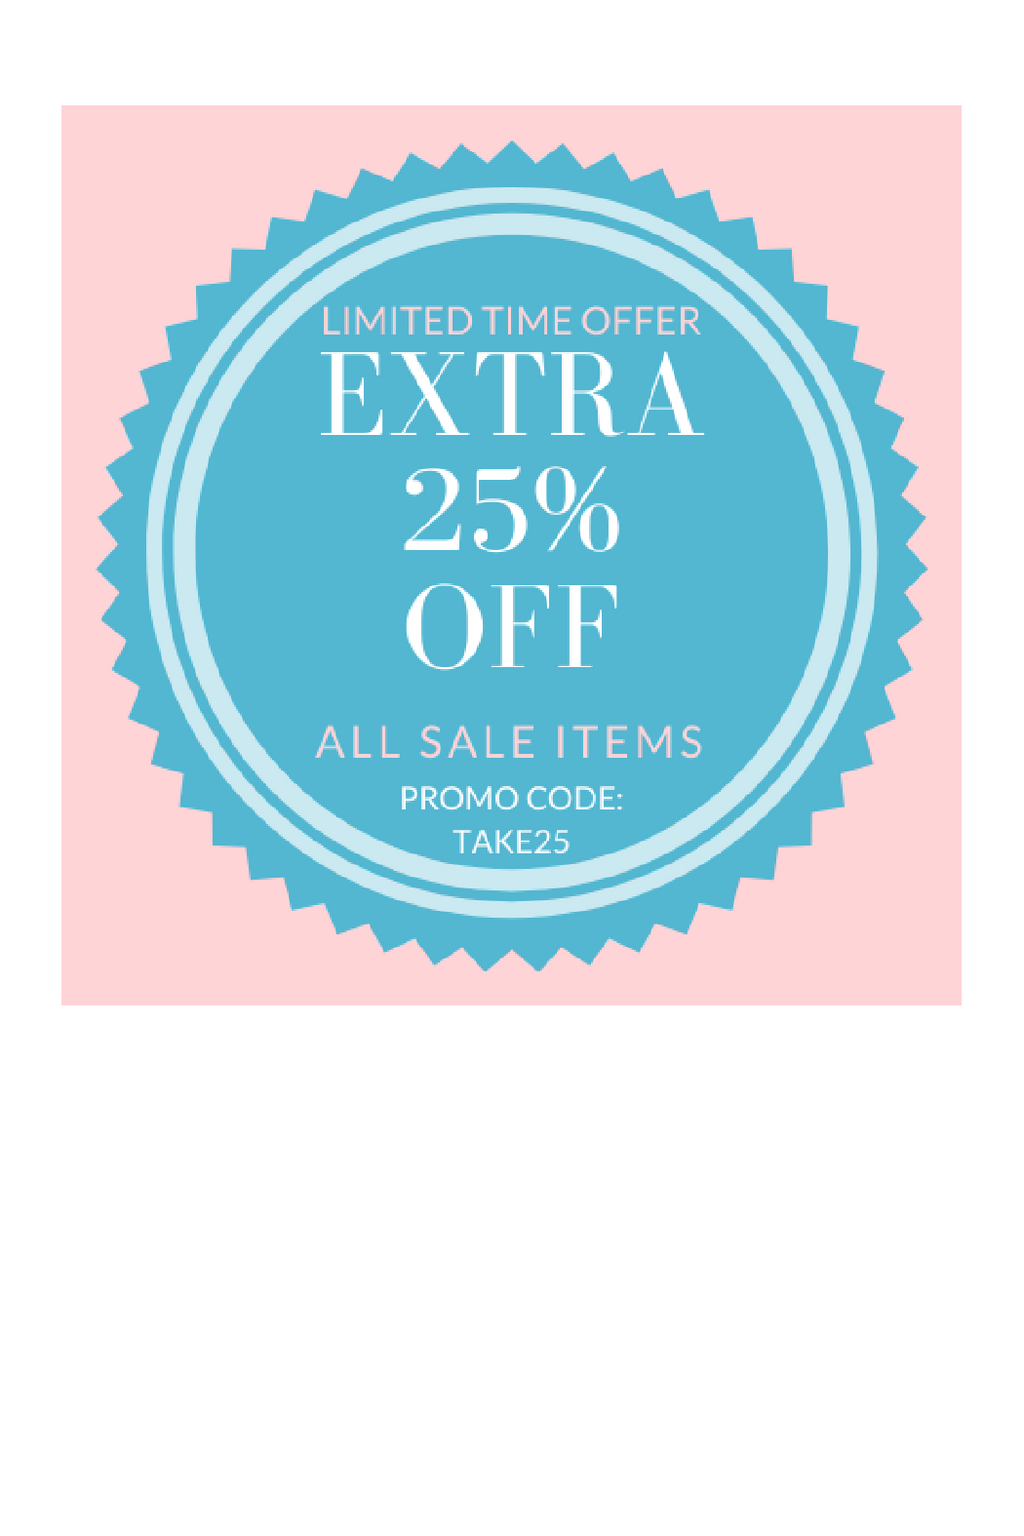 EXTRA 25% OFF WITH PROMO CODE TAKE25